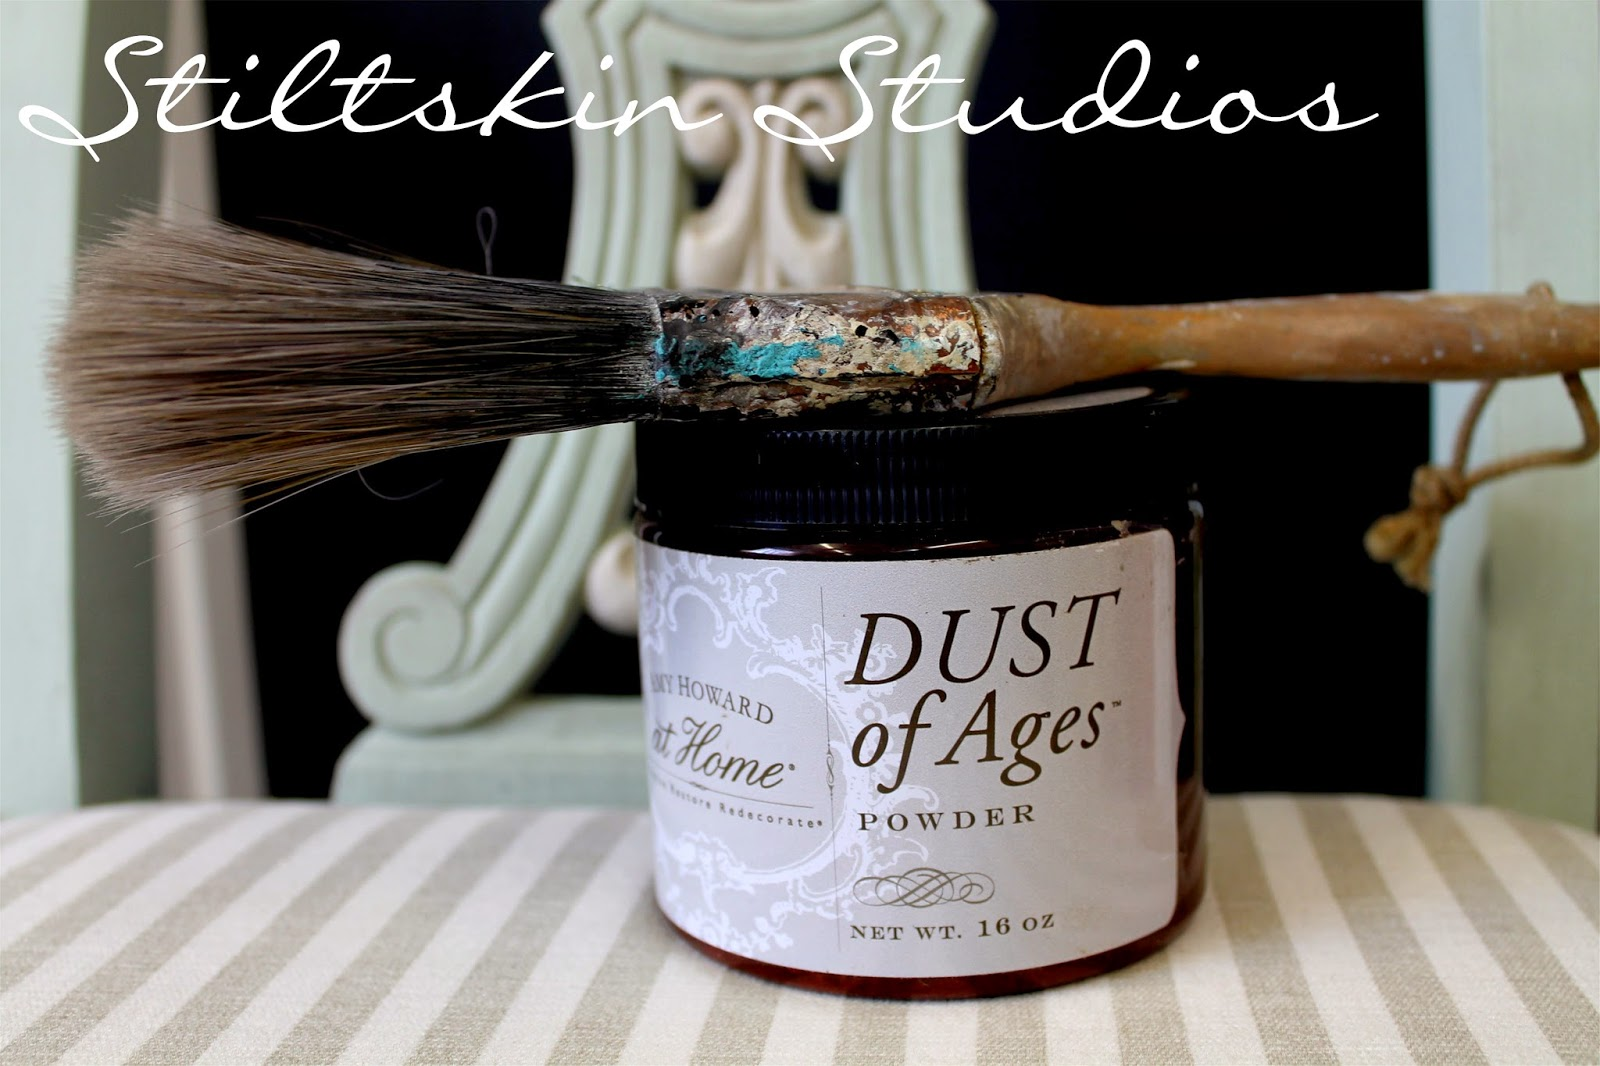 How to dust furniture - Dust Of Ages How To